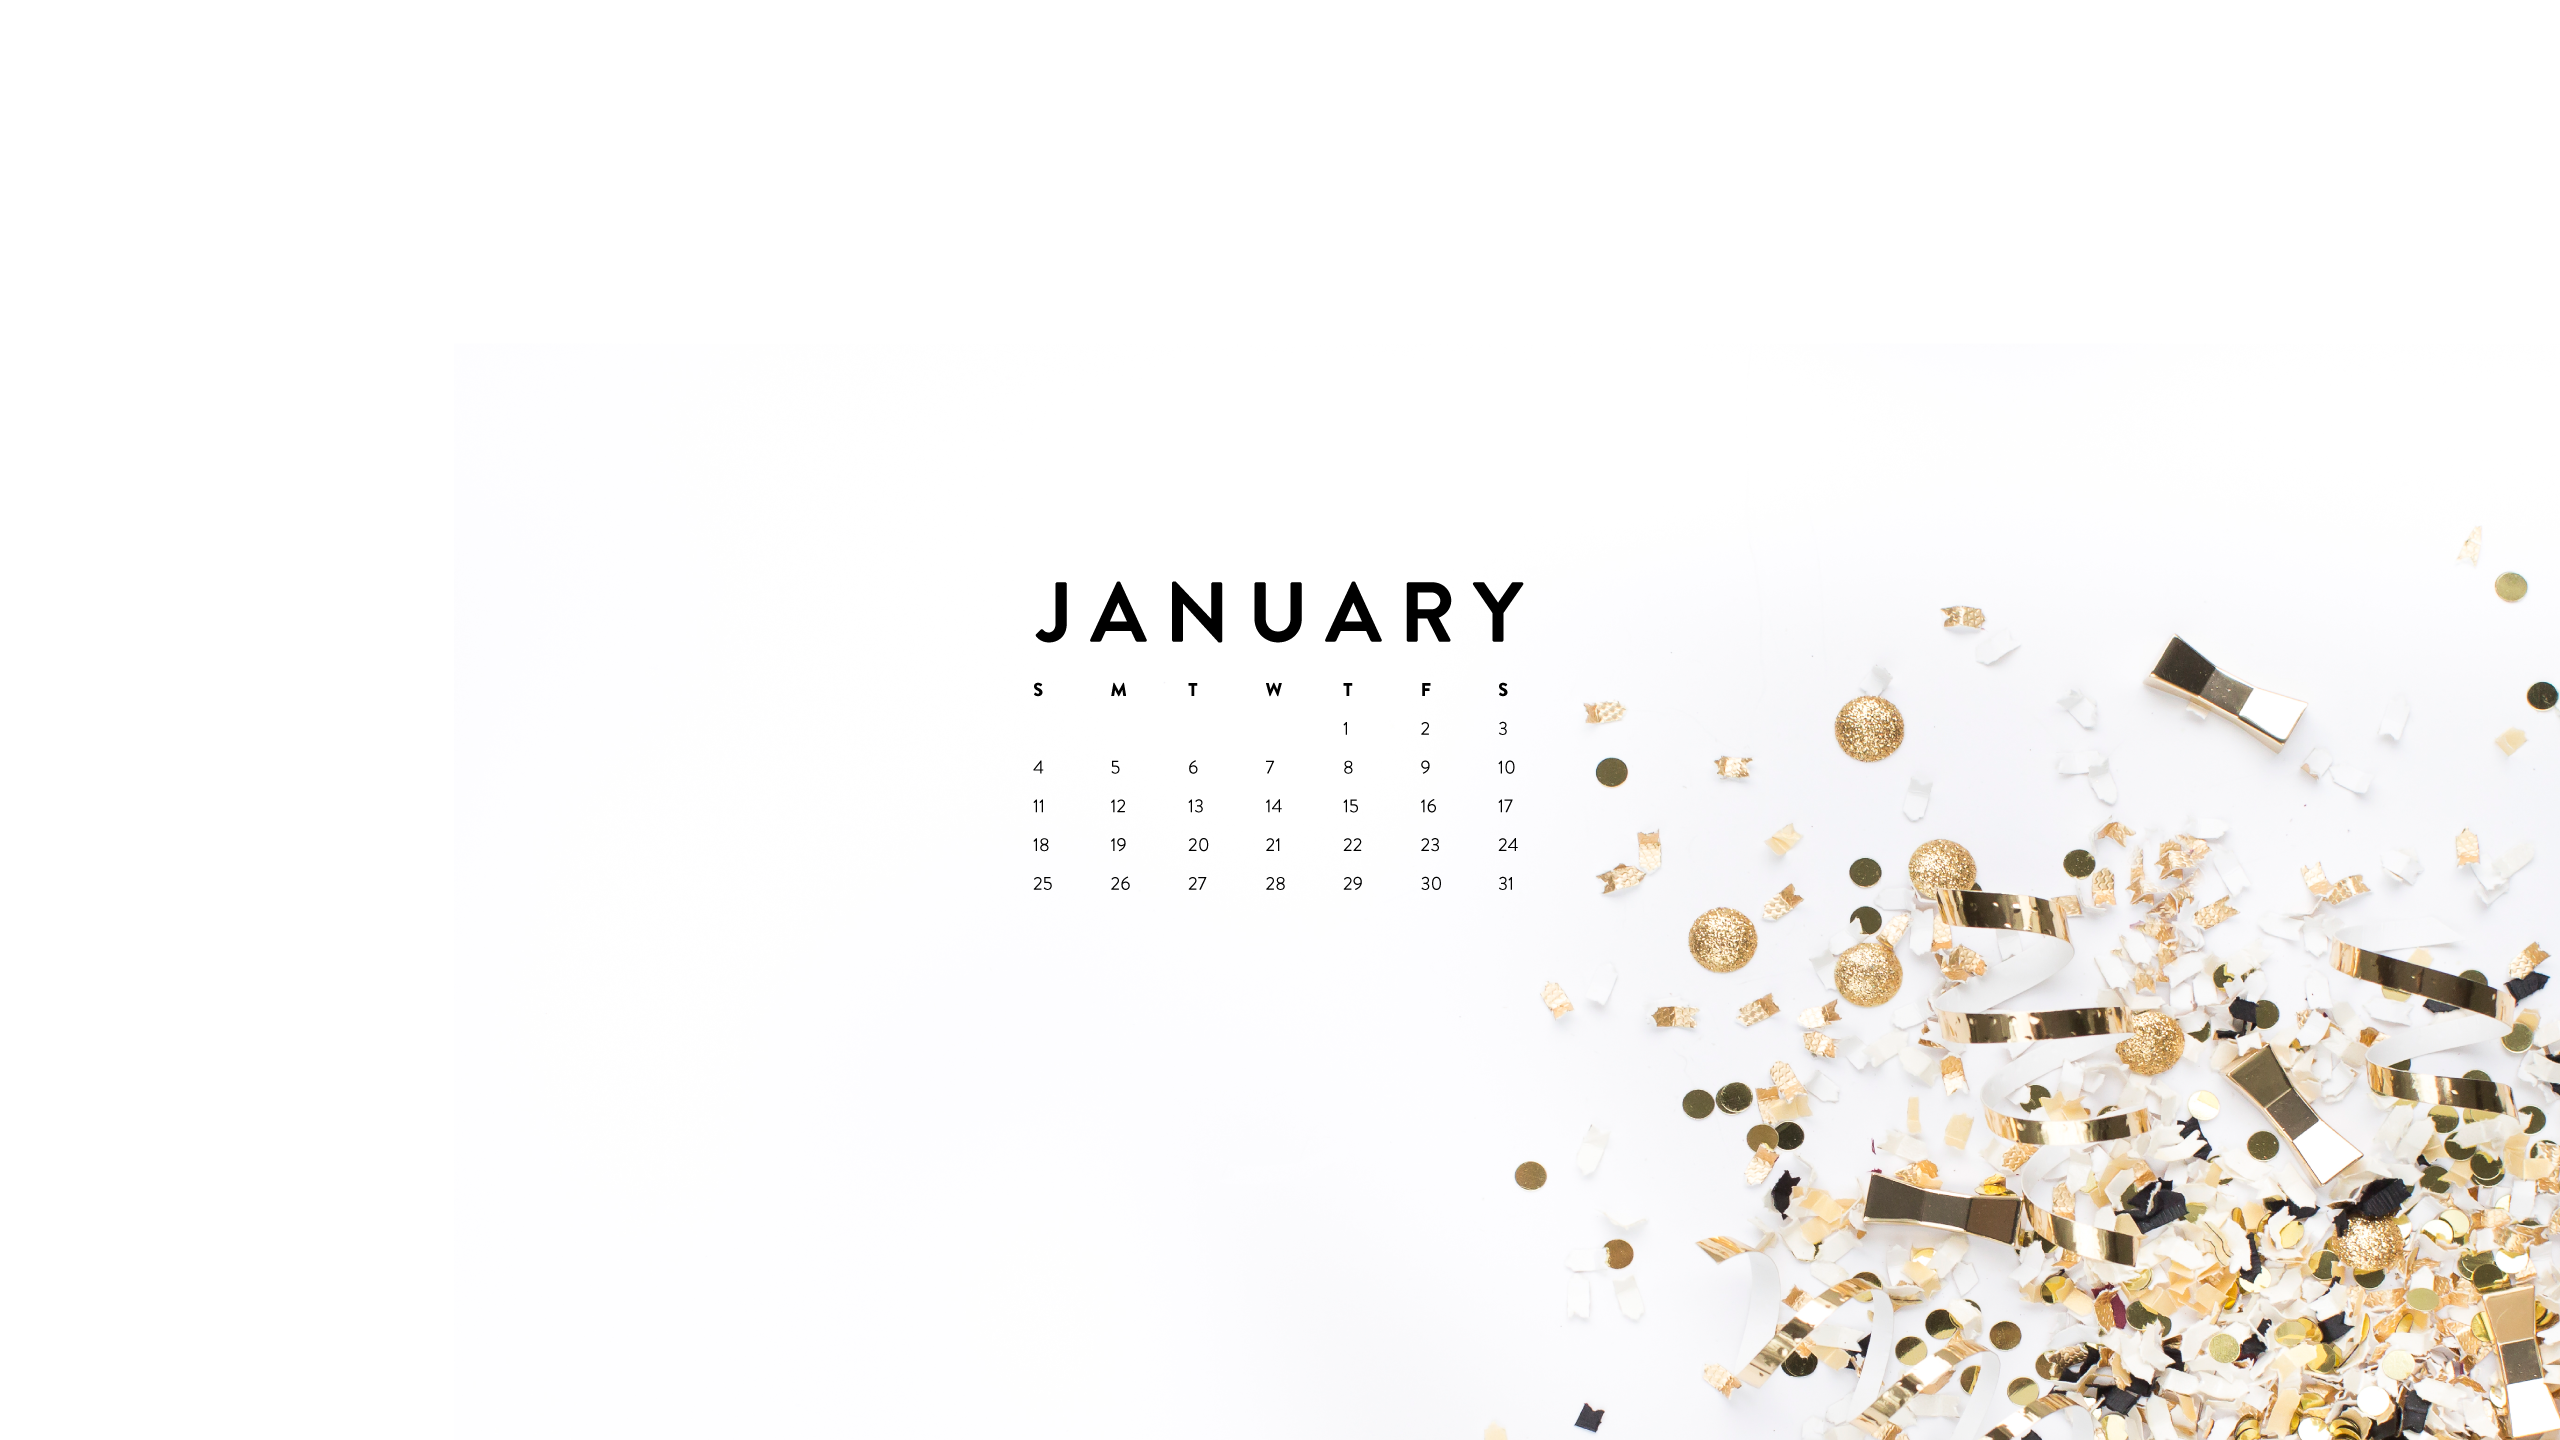 Cute January Calendar Wallpaper : January desktop wallpaper wallpapersafari